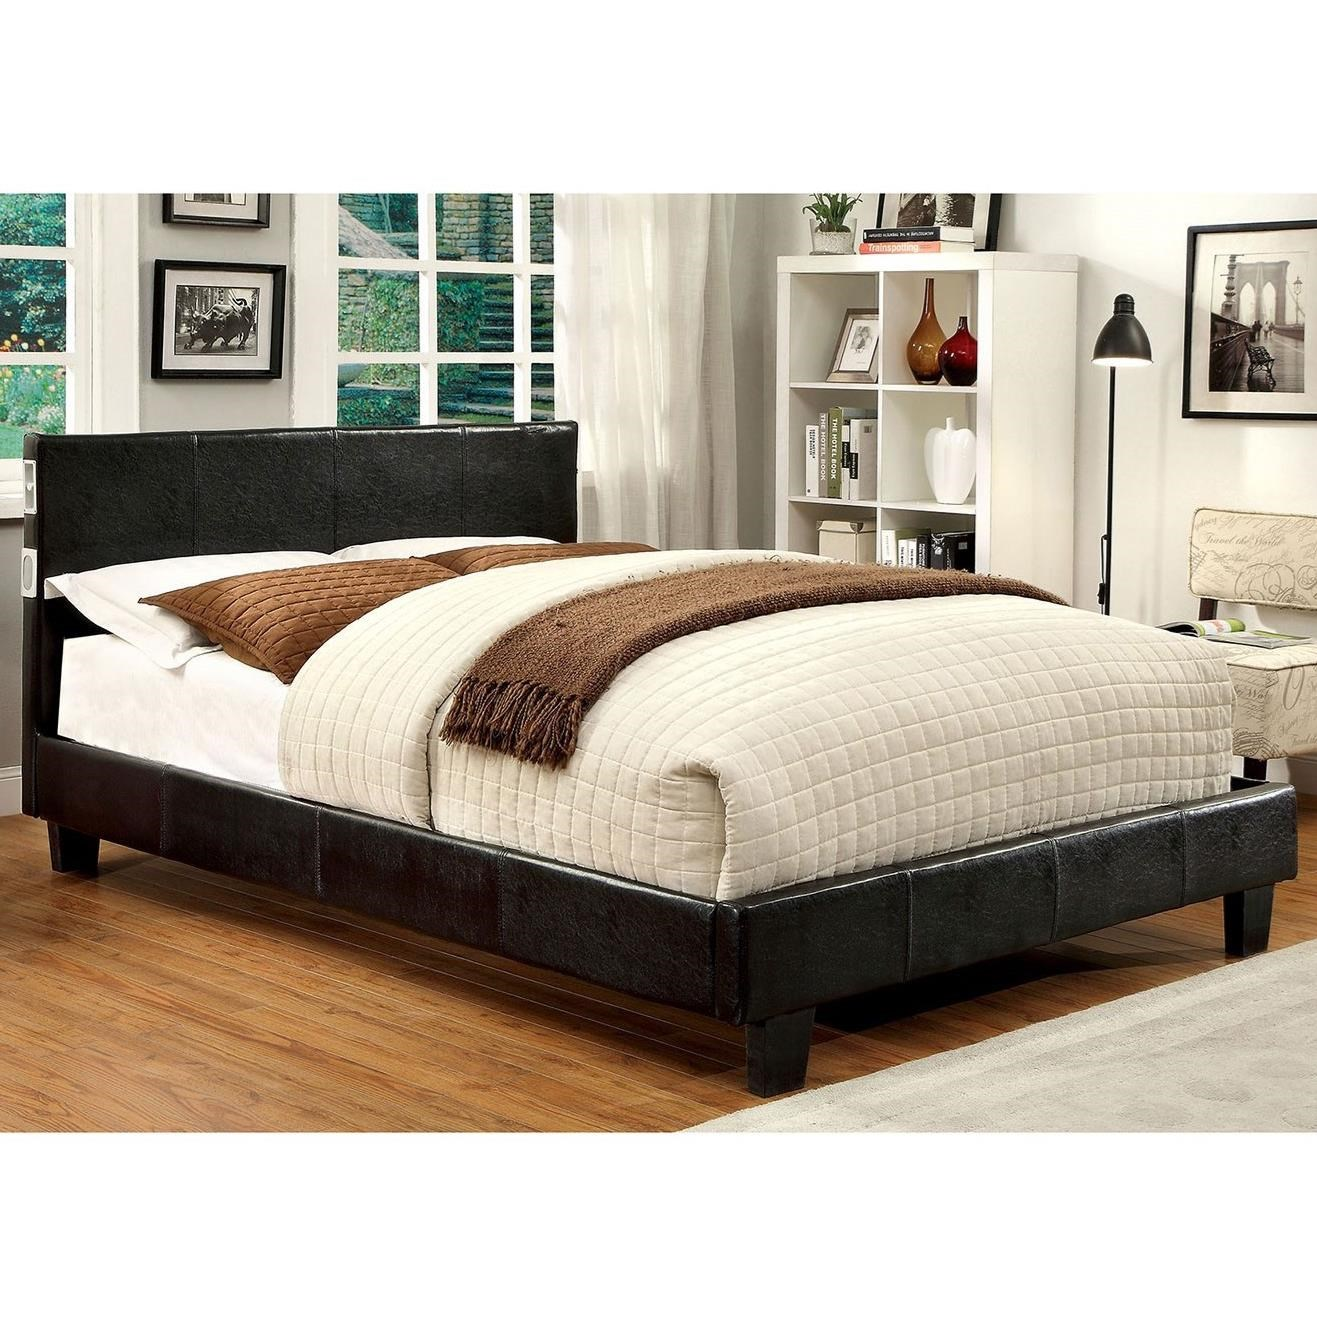 Evans King Bed at Household Furniture